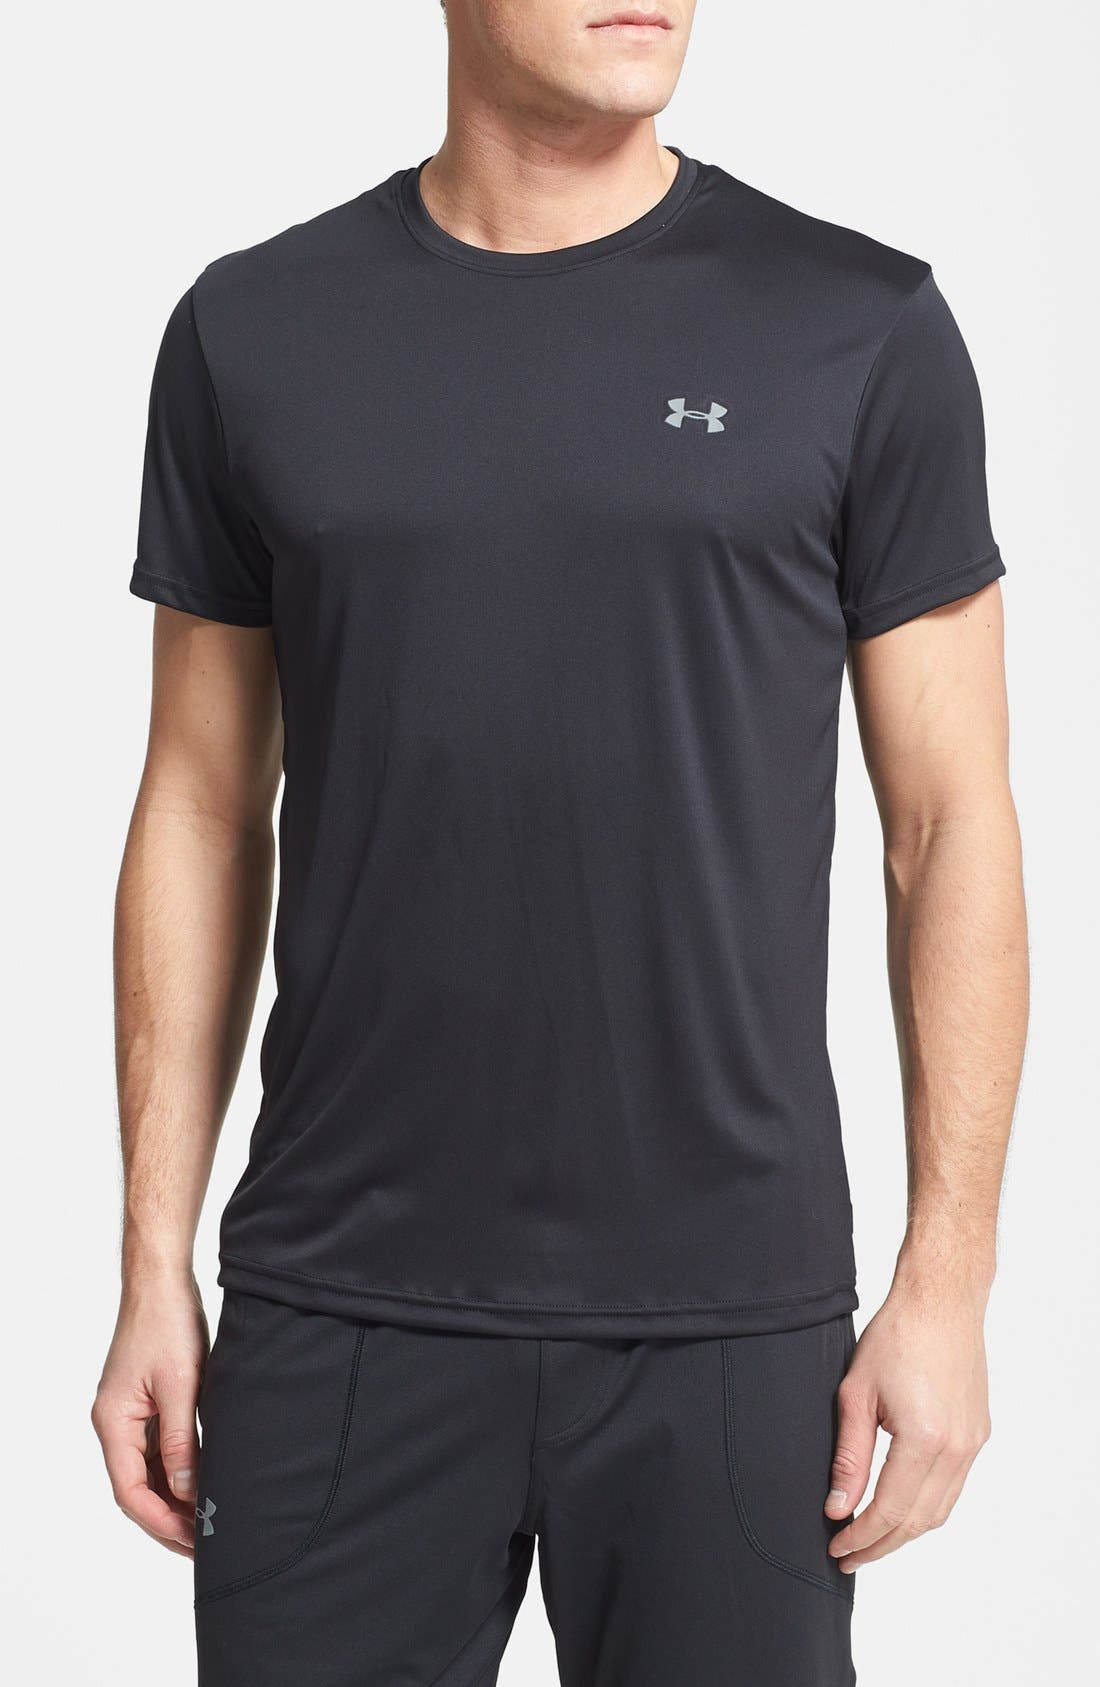 Main Image - Under Armour Crewneck HeatGear® T-Shirt (2-Pack)